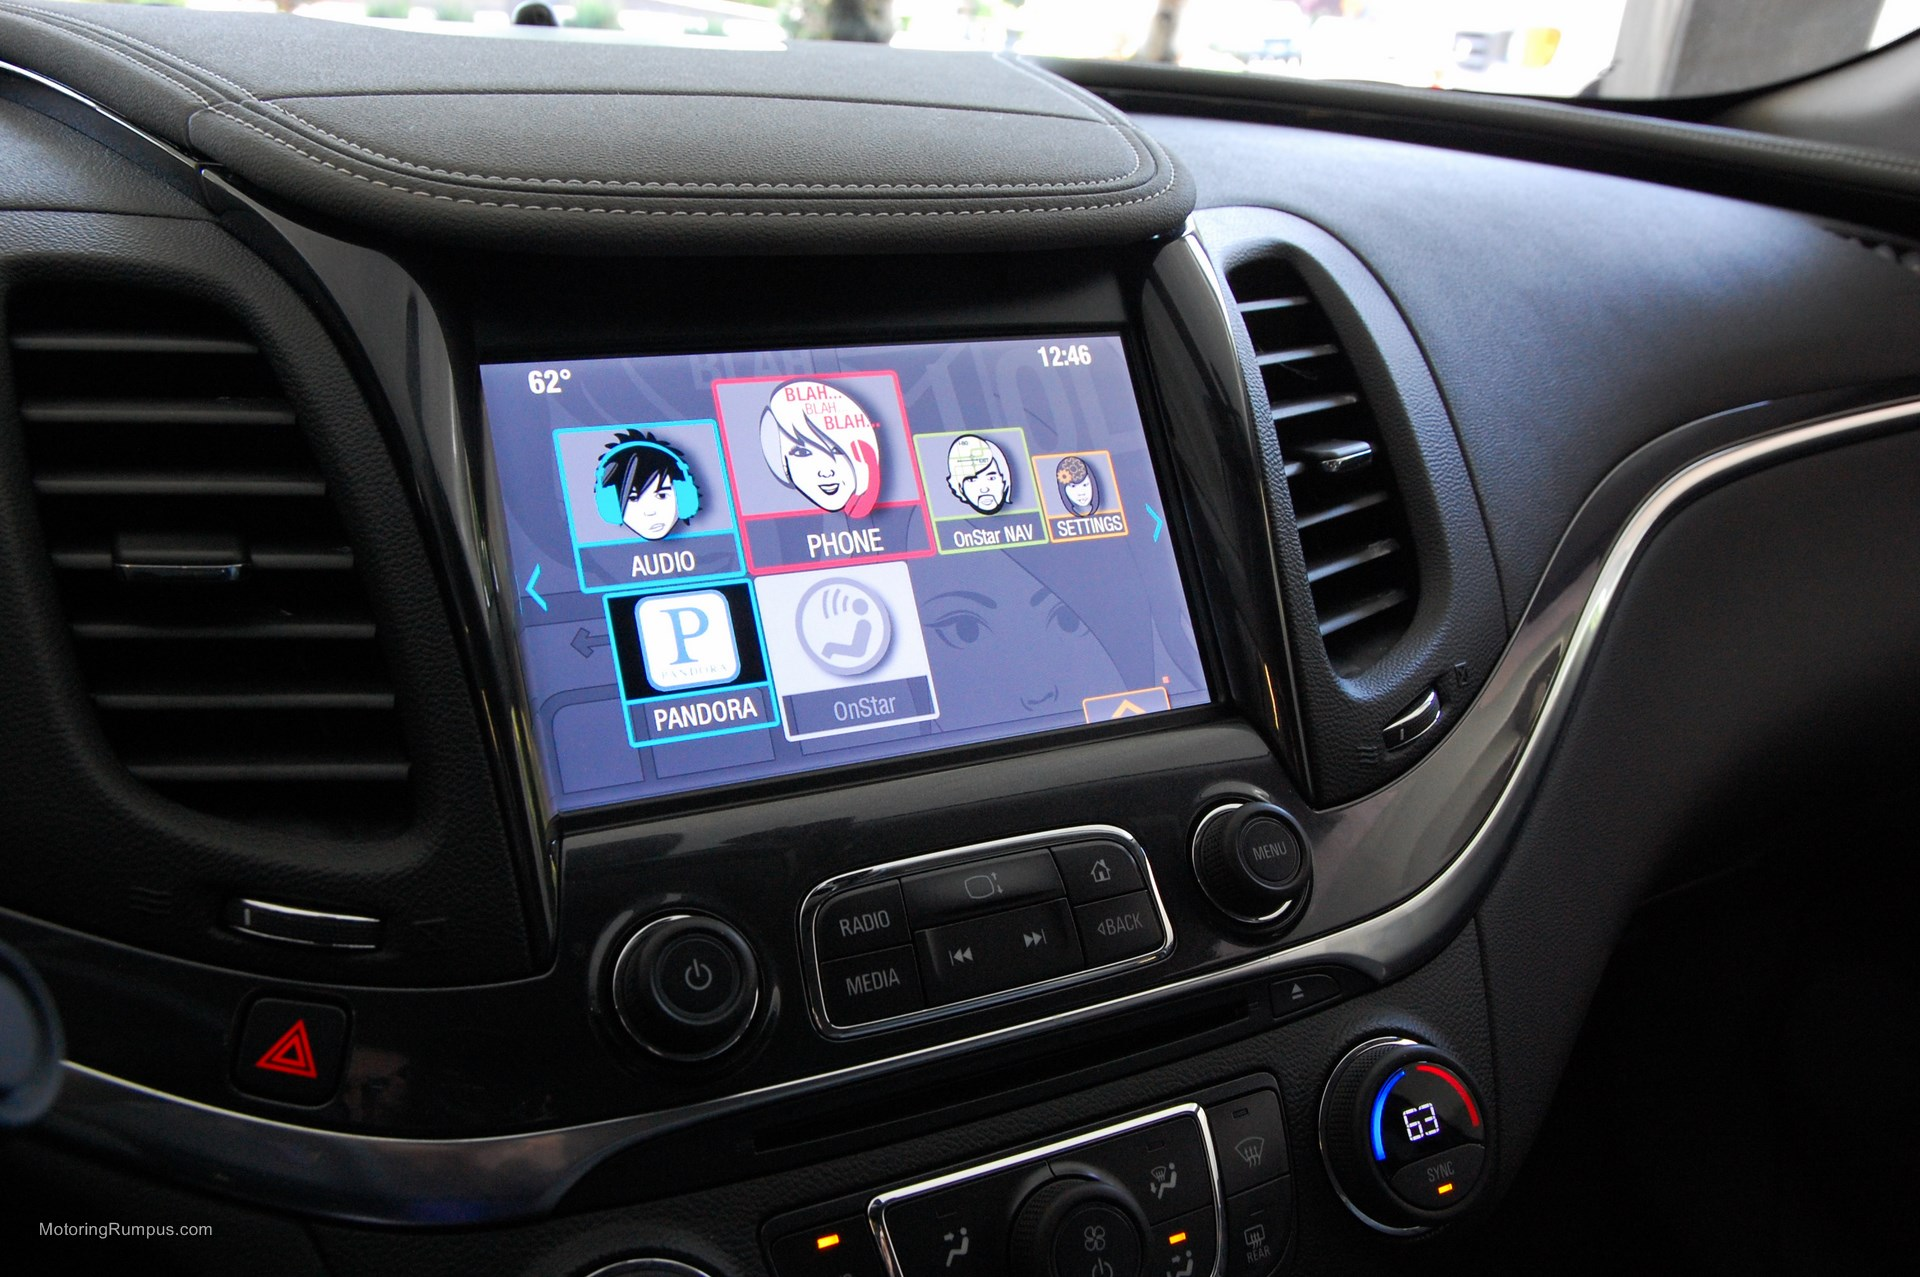 2014 Chevy Impala 8-inch Touchscreen